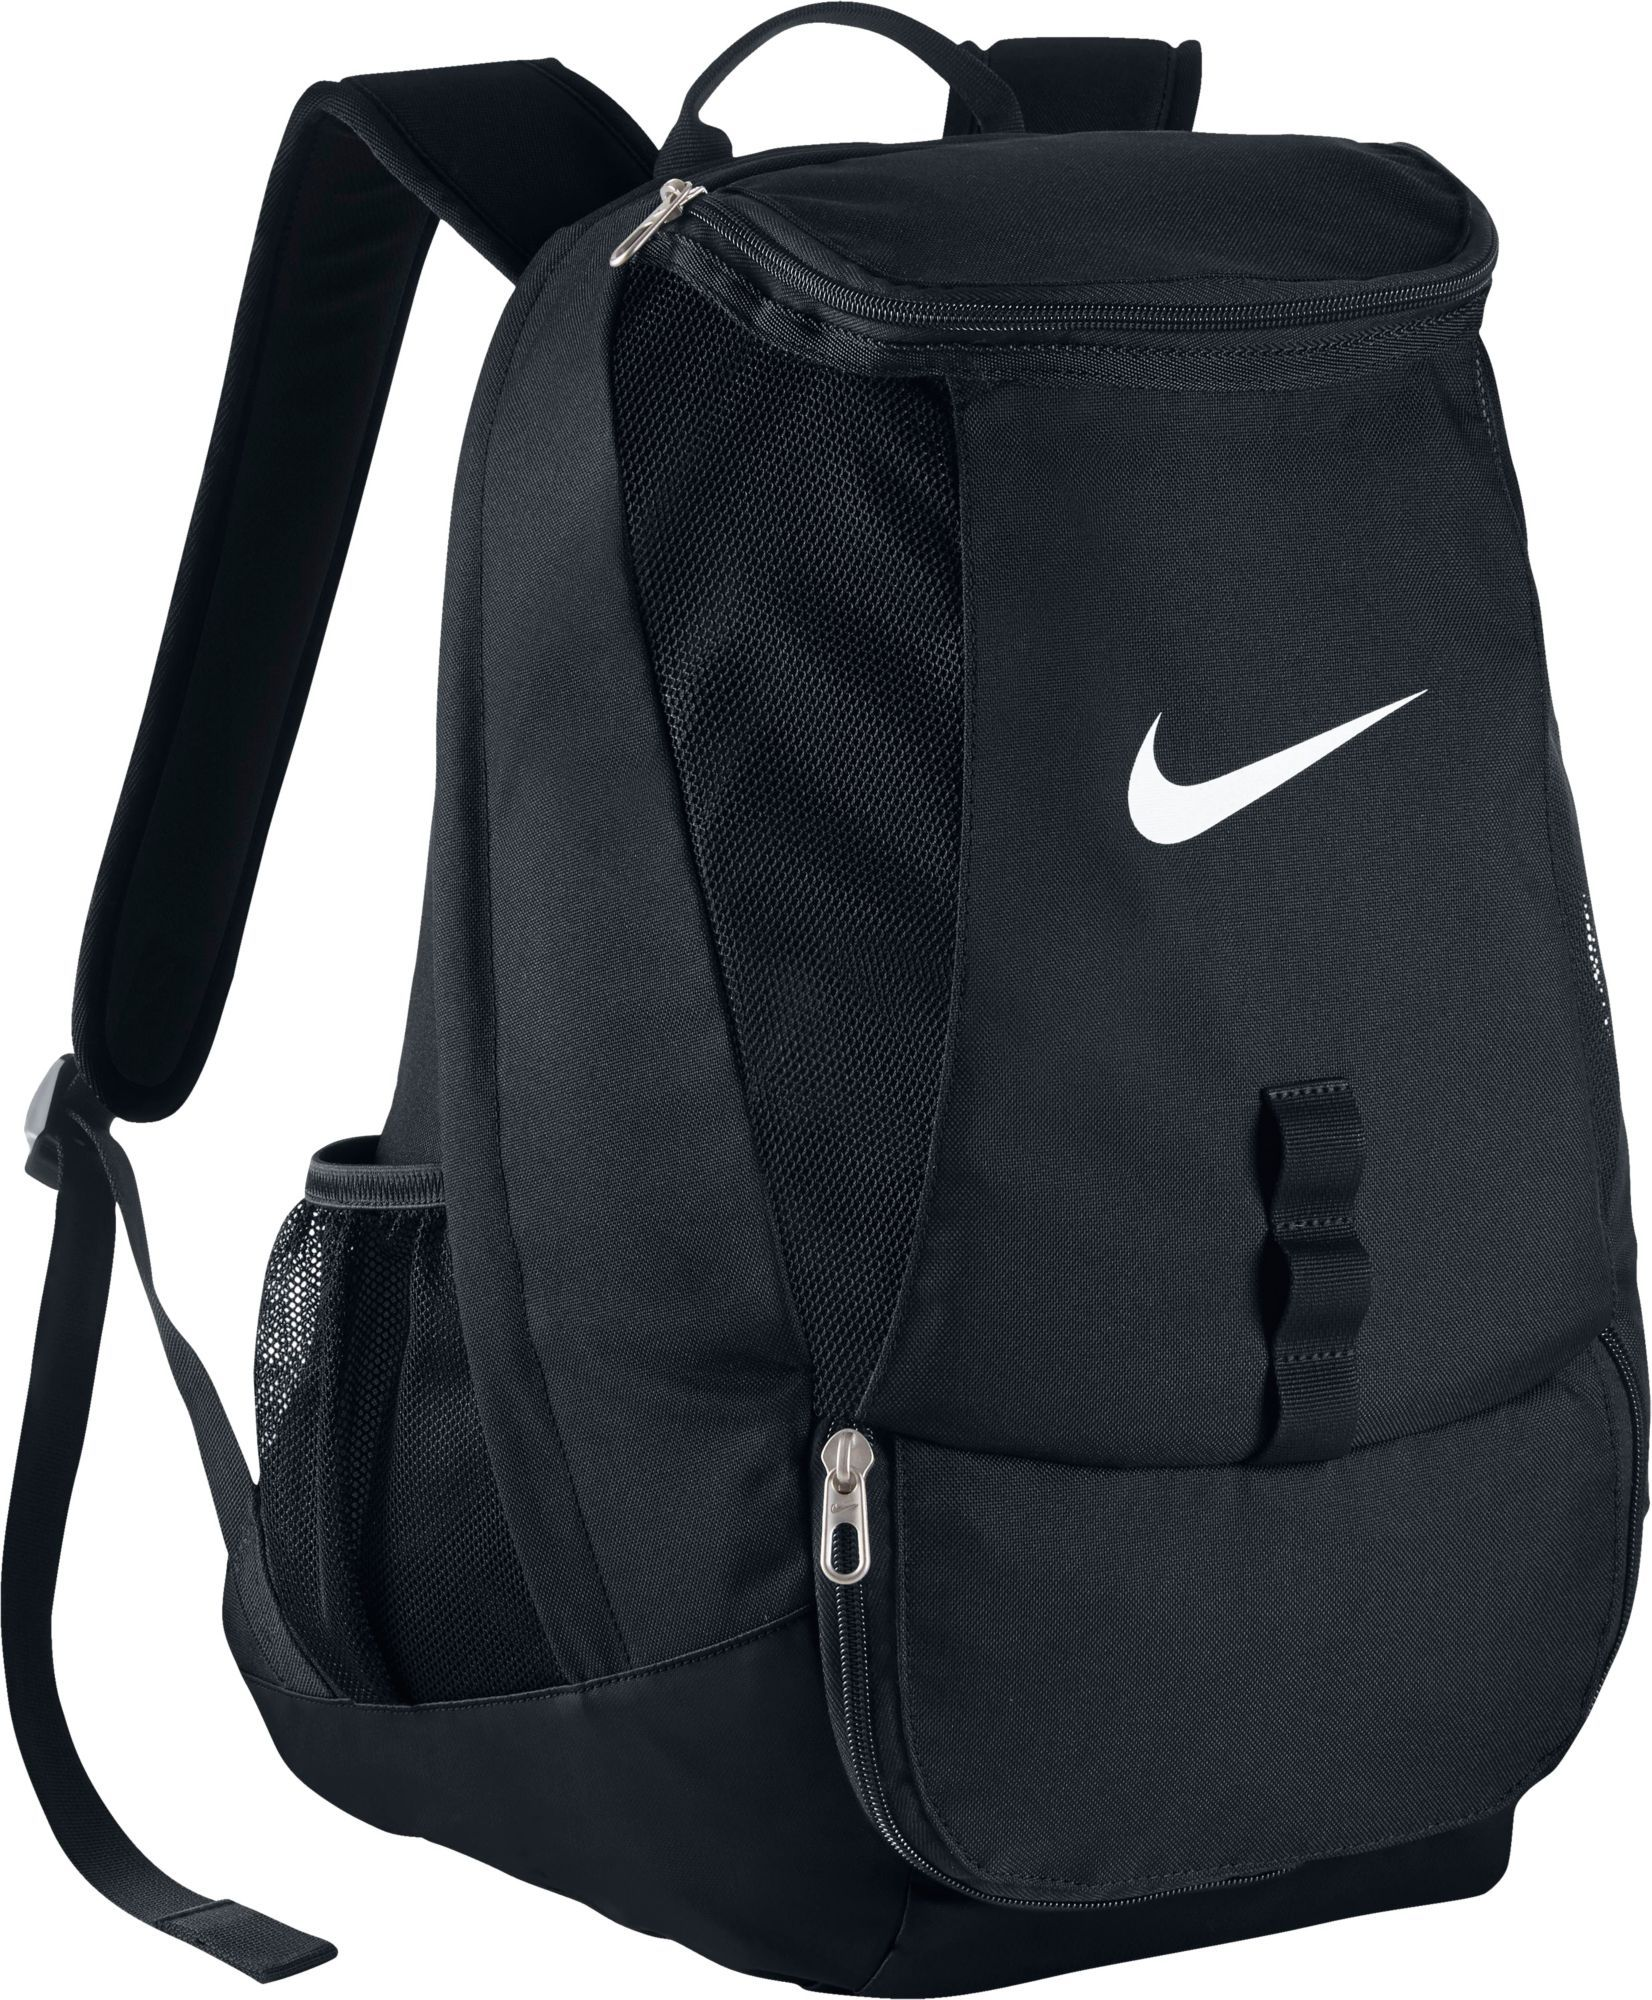 fa936185b Nike Club Team Swoosh Soccer Backpack in 2019 | Products | Backpacks ...